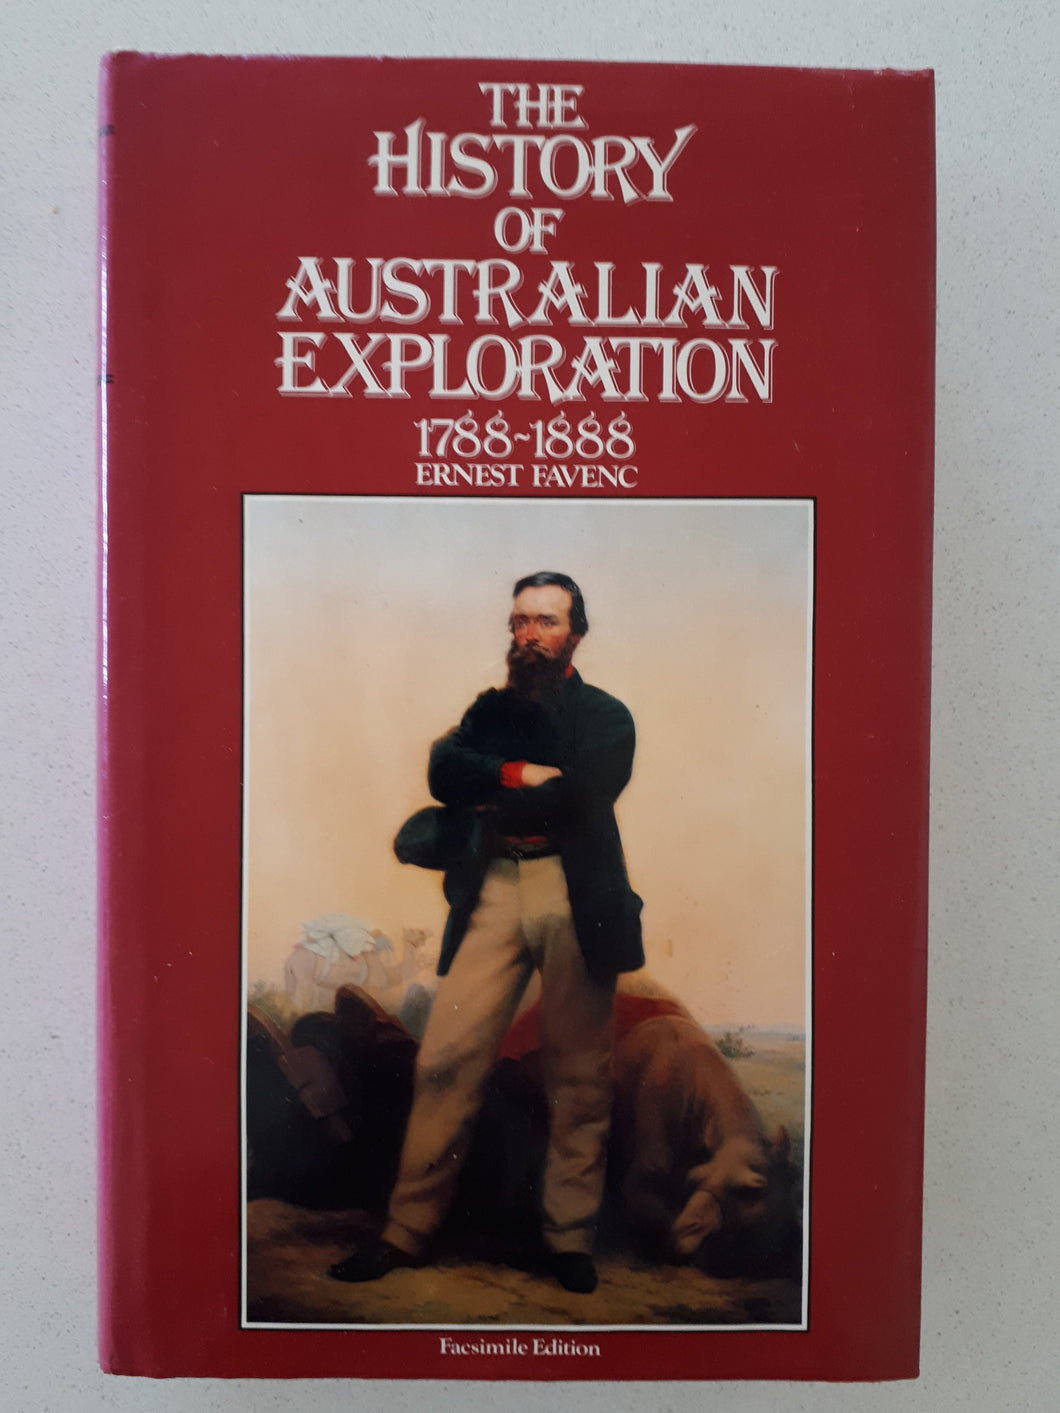 The History of Australian Exploration 1788-1888 by Ernest Favenc